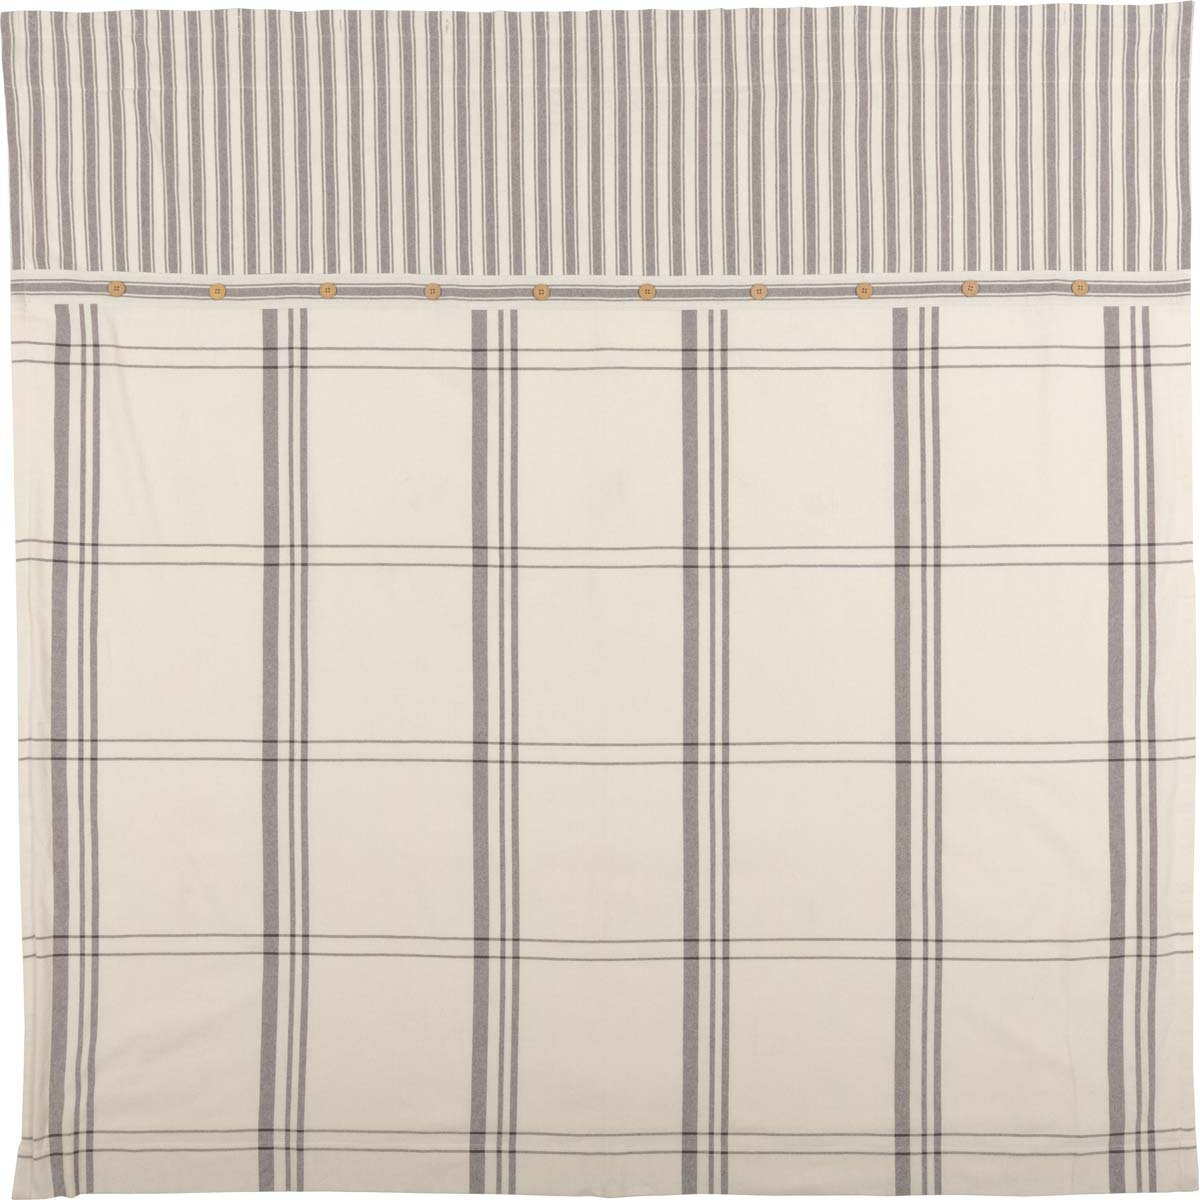 Piper Classics Market Place Shower Curtain, 72'' x 72'', Ticking Stripe w/Grey & Cream Plaid by Piper Classics (Image #2)